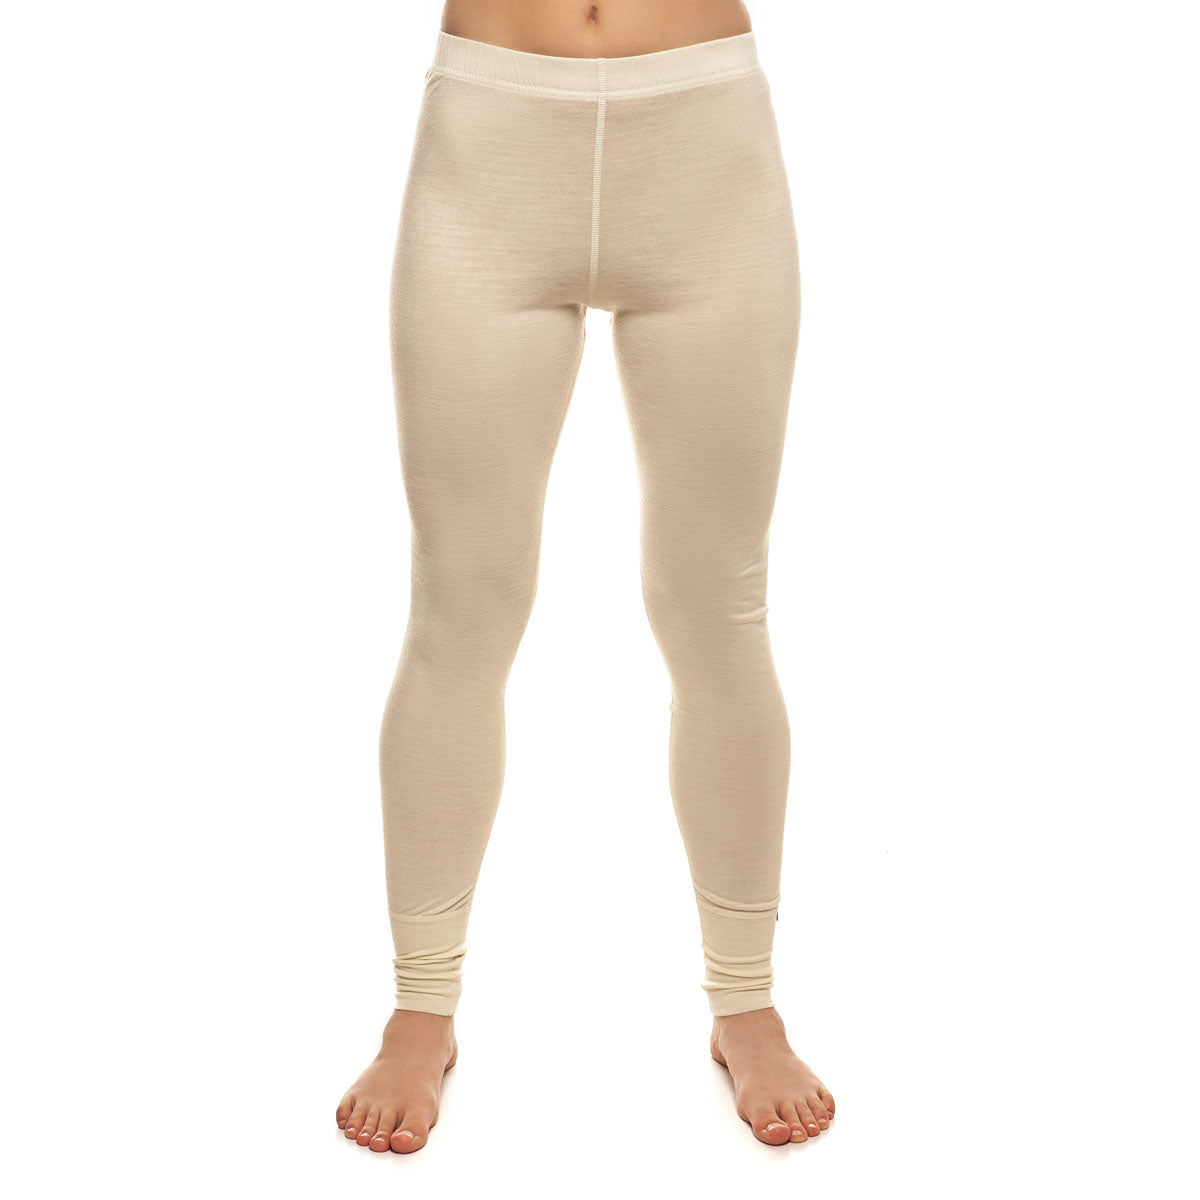 menique Women's Merino 160 Pants Natural Color